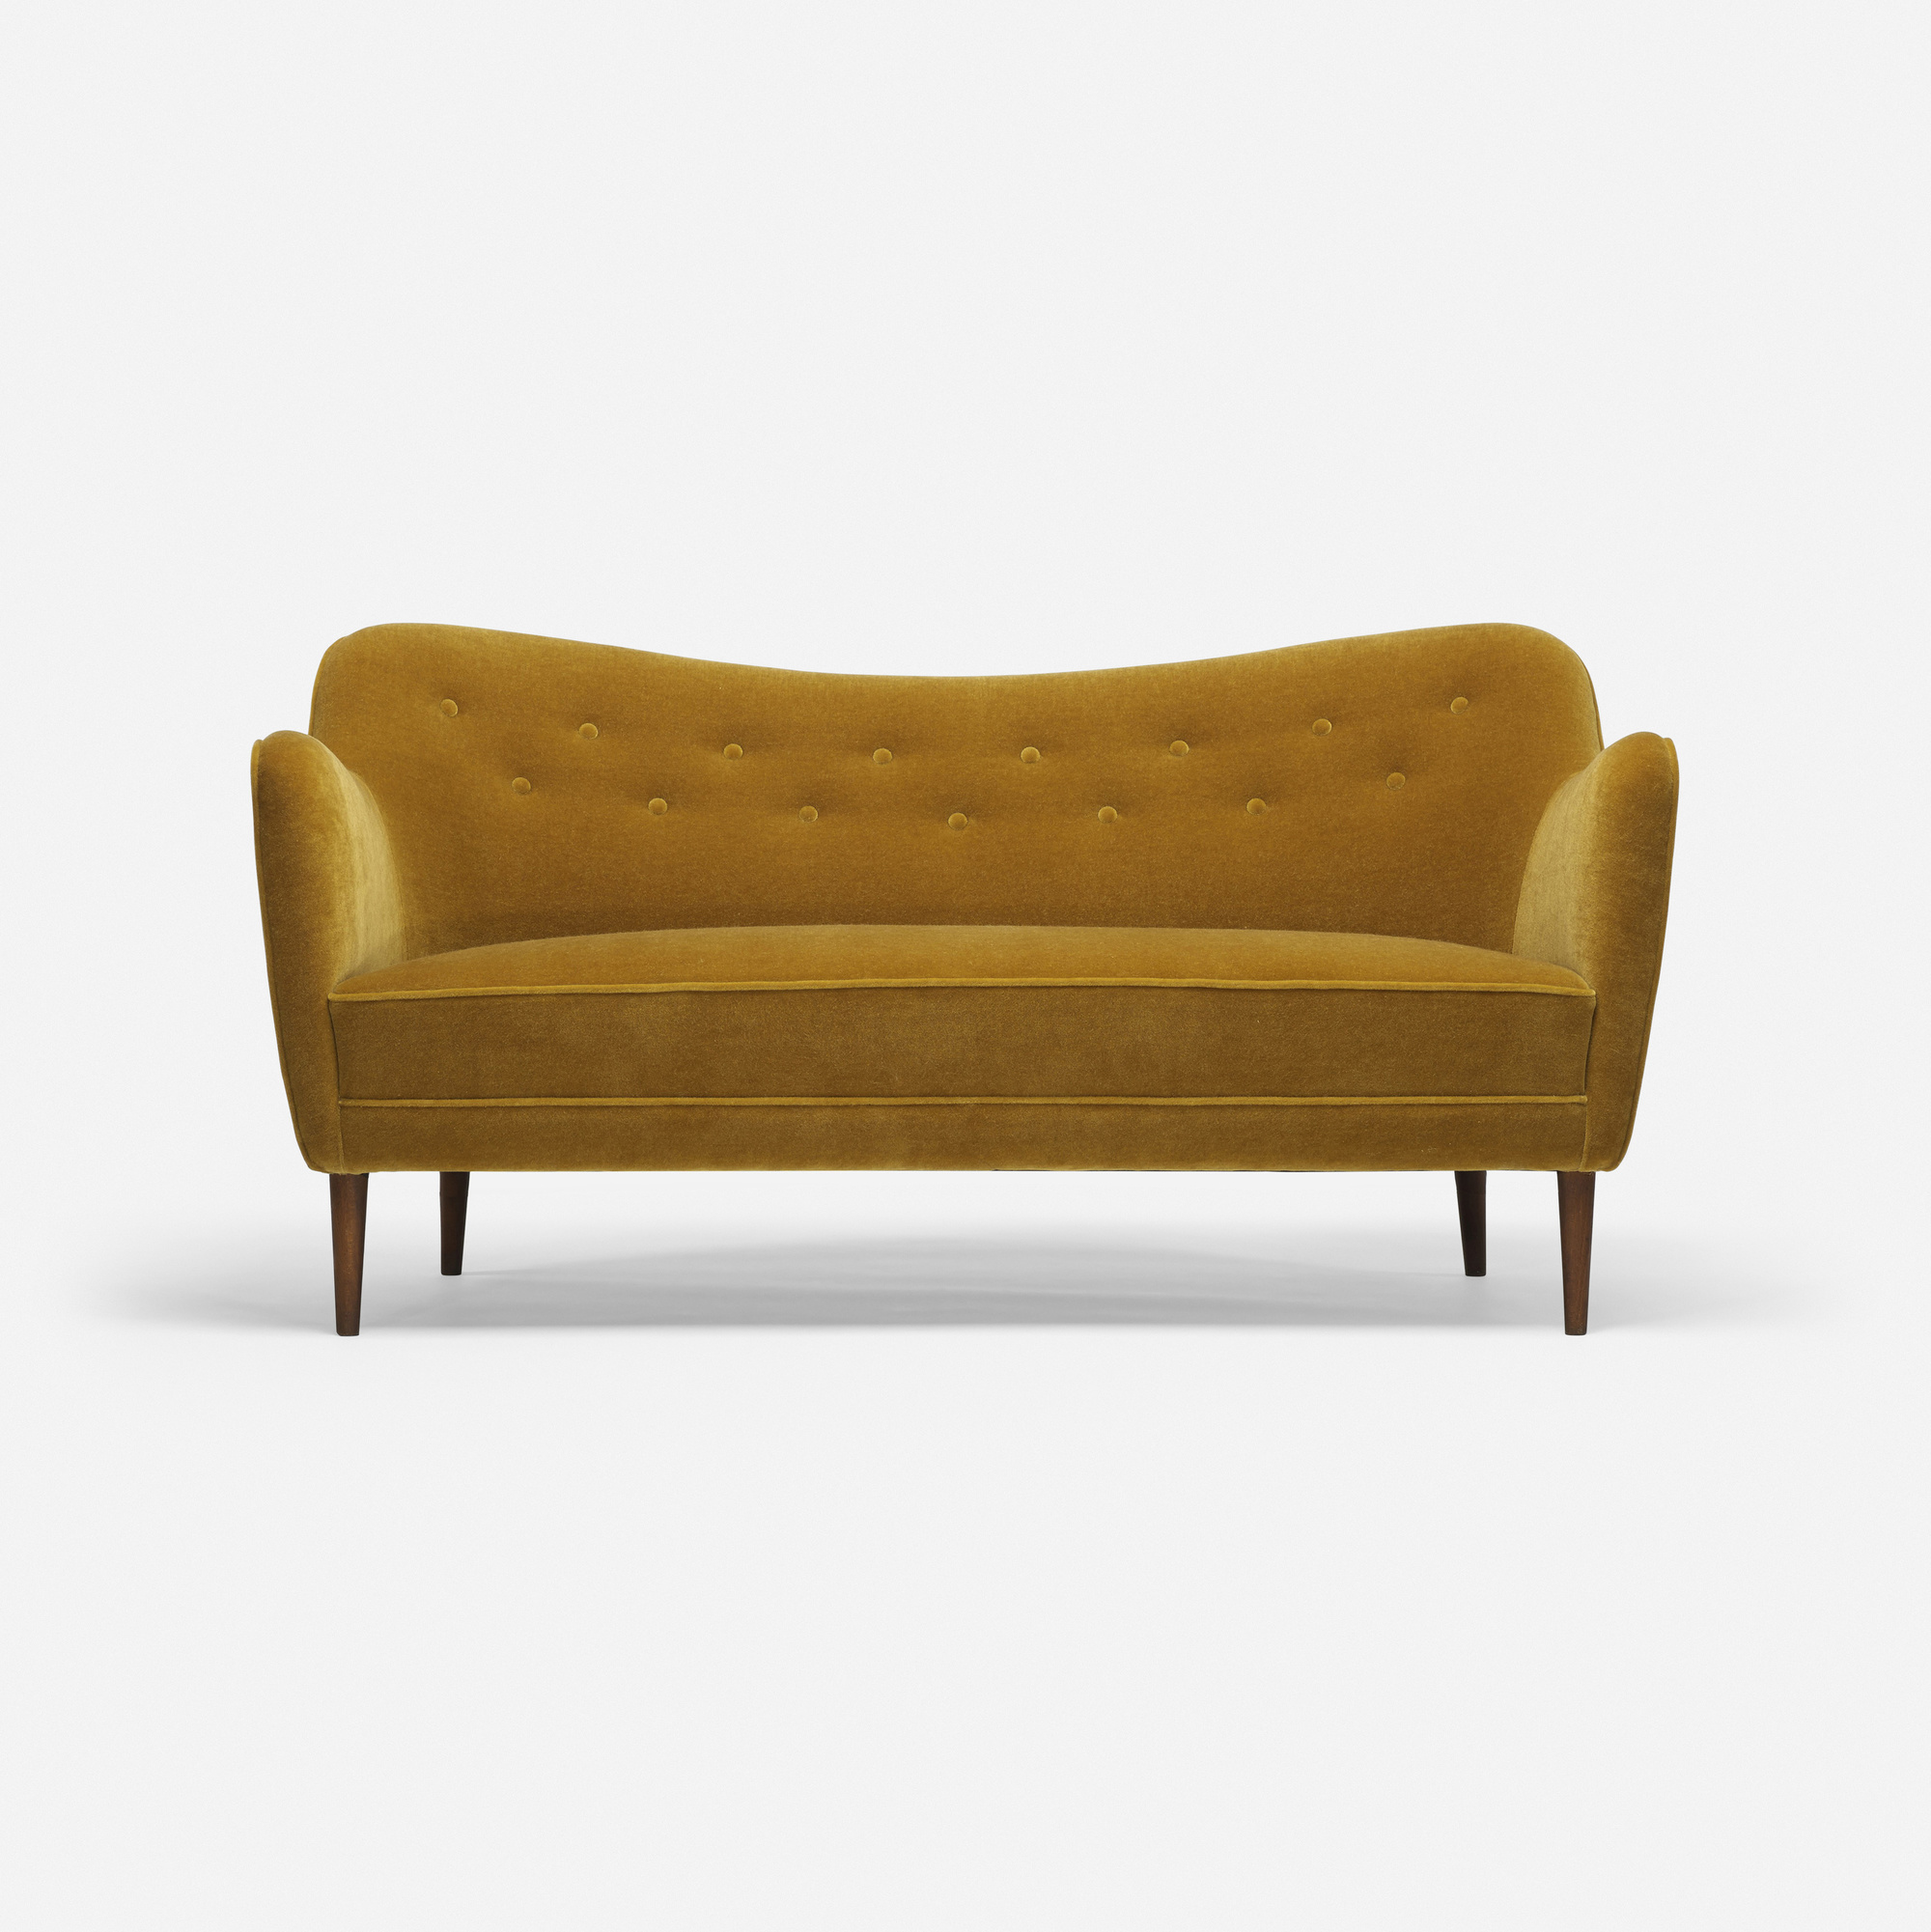 122: Finn Juhl / sofa (1 of 3)